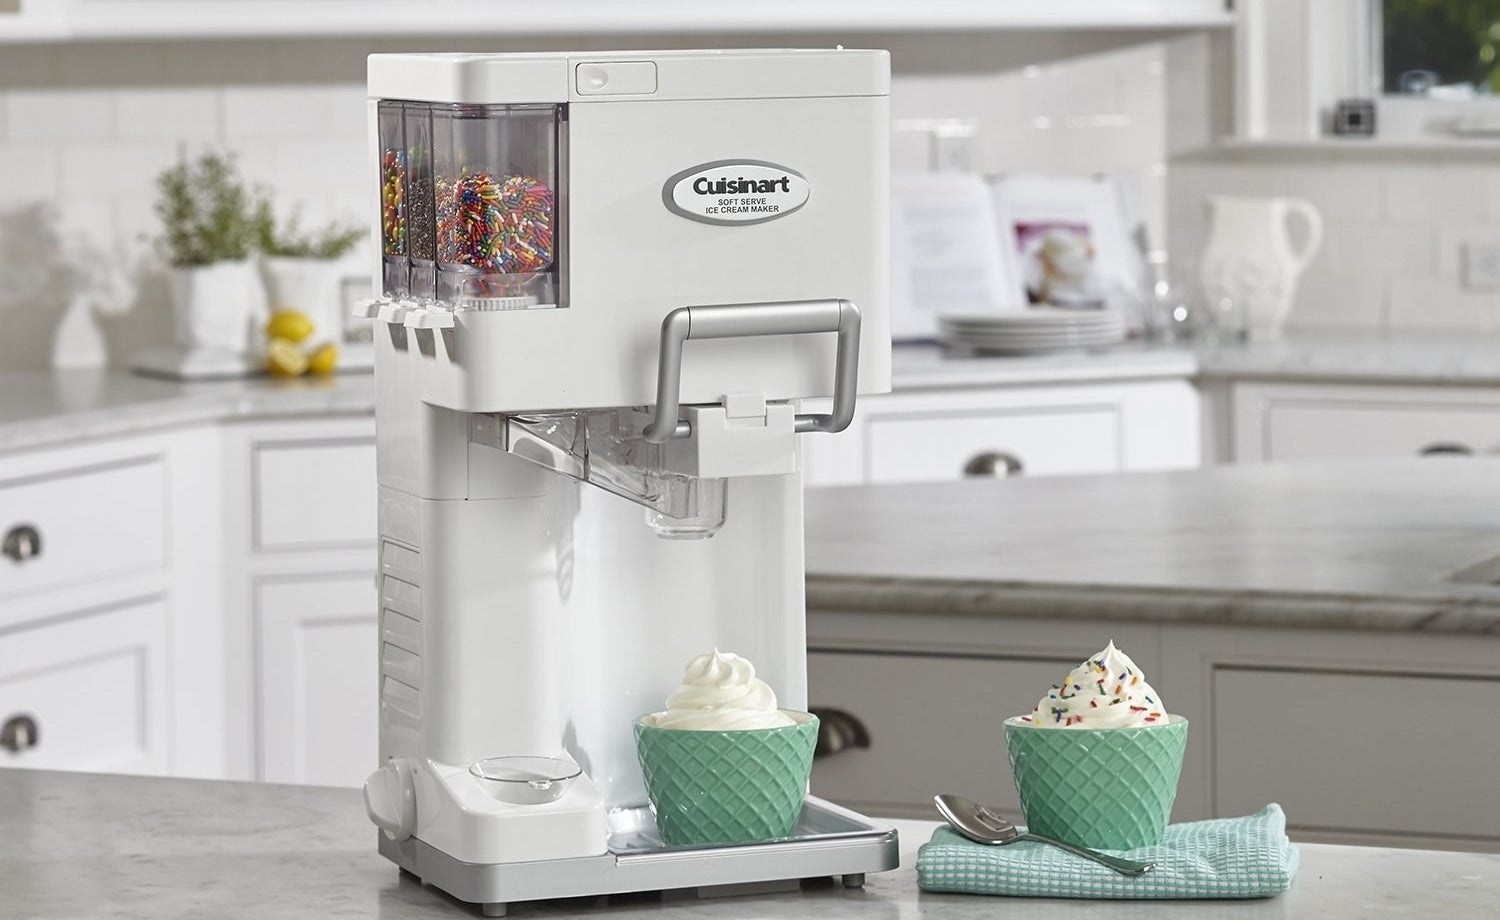 Can make up to 1.5 qt. of soft serve in about 20 minutes. Features three built-in condiment dispensers and a spot to place cones. It's automatic! All you need to do is put in your own ingredients, turn on the dial, and let it do all the work. includes a recipe book for inspo!Get it from Walmart for $99.95.